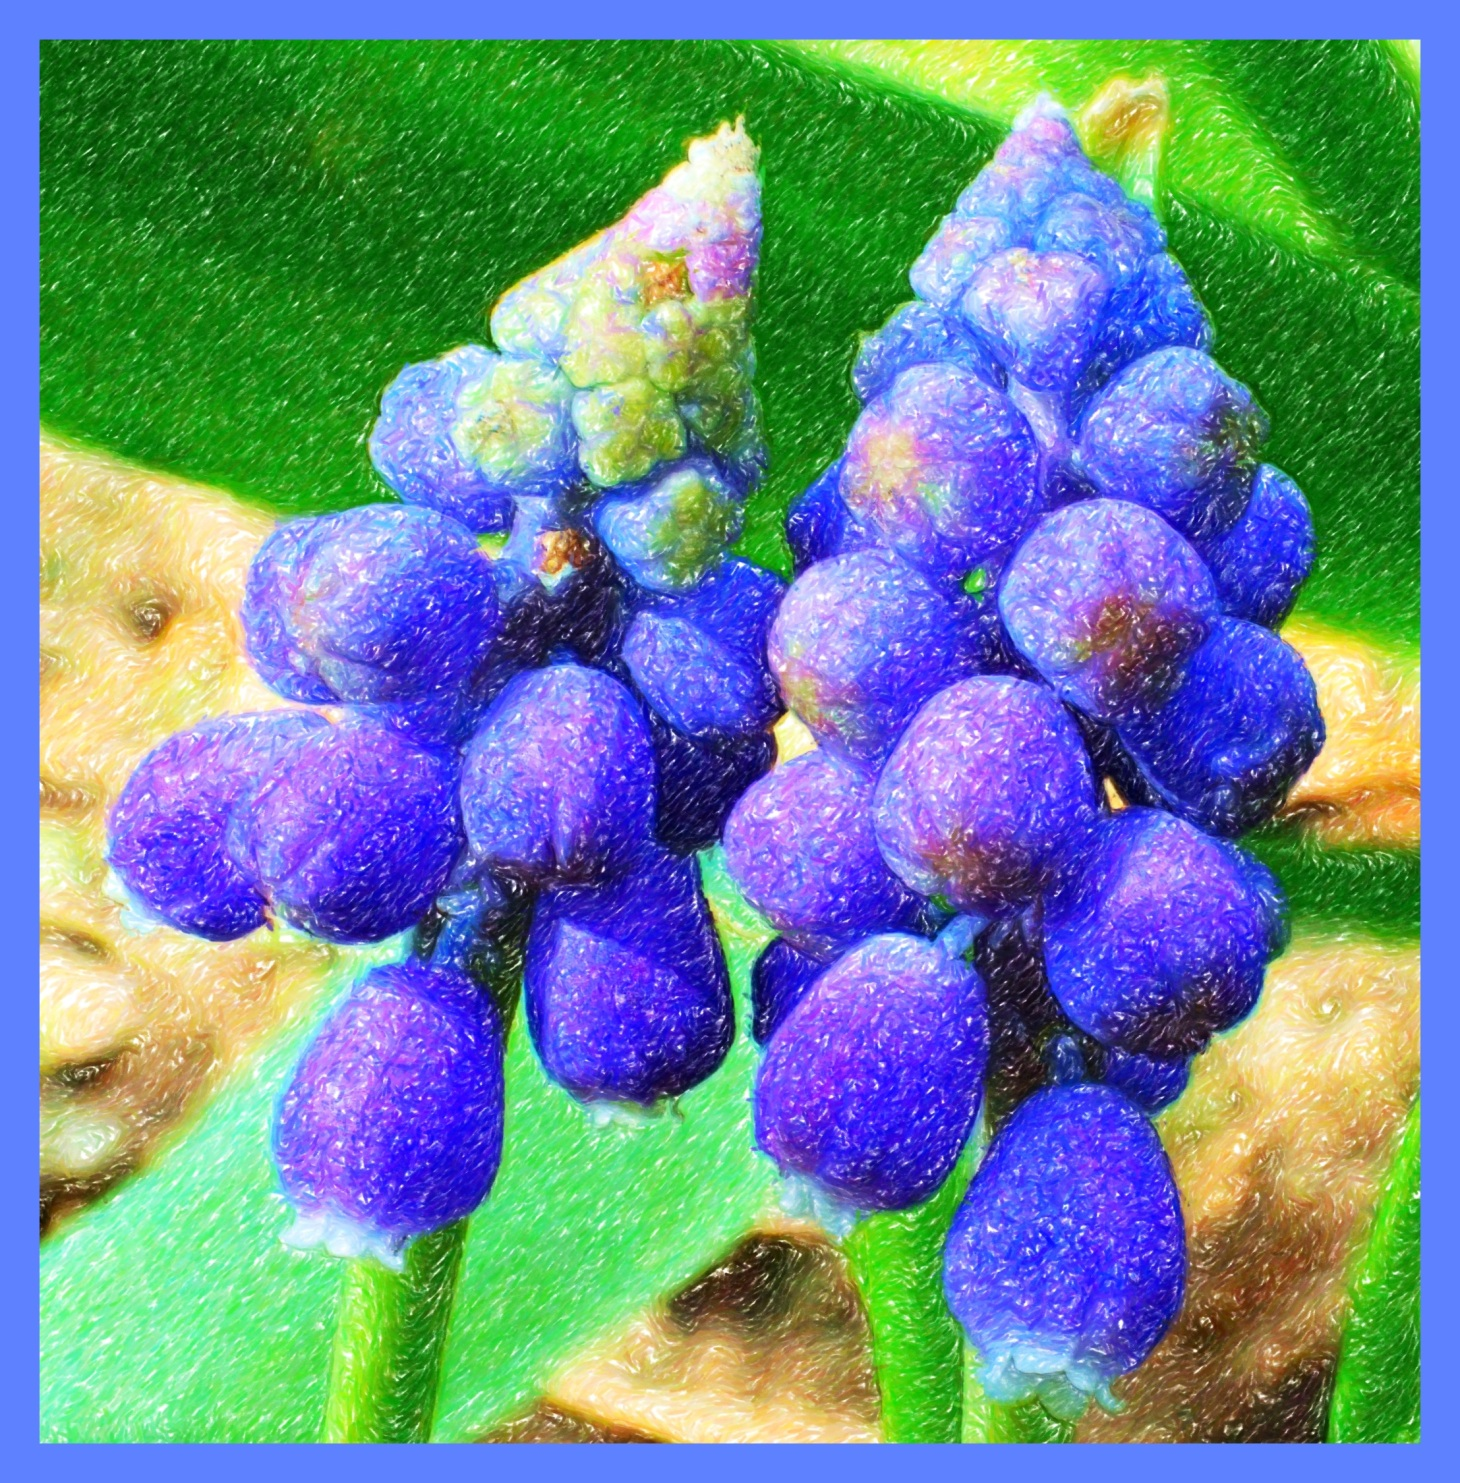 Grape Hyacinths (2) (Color Pencil, Digital) Photo by Thomas Peace c. 2015